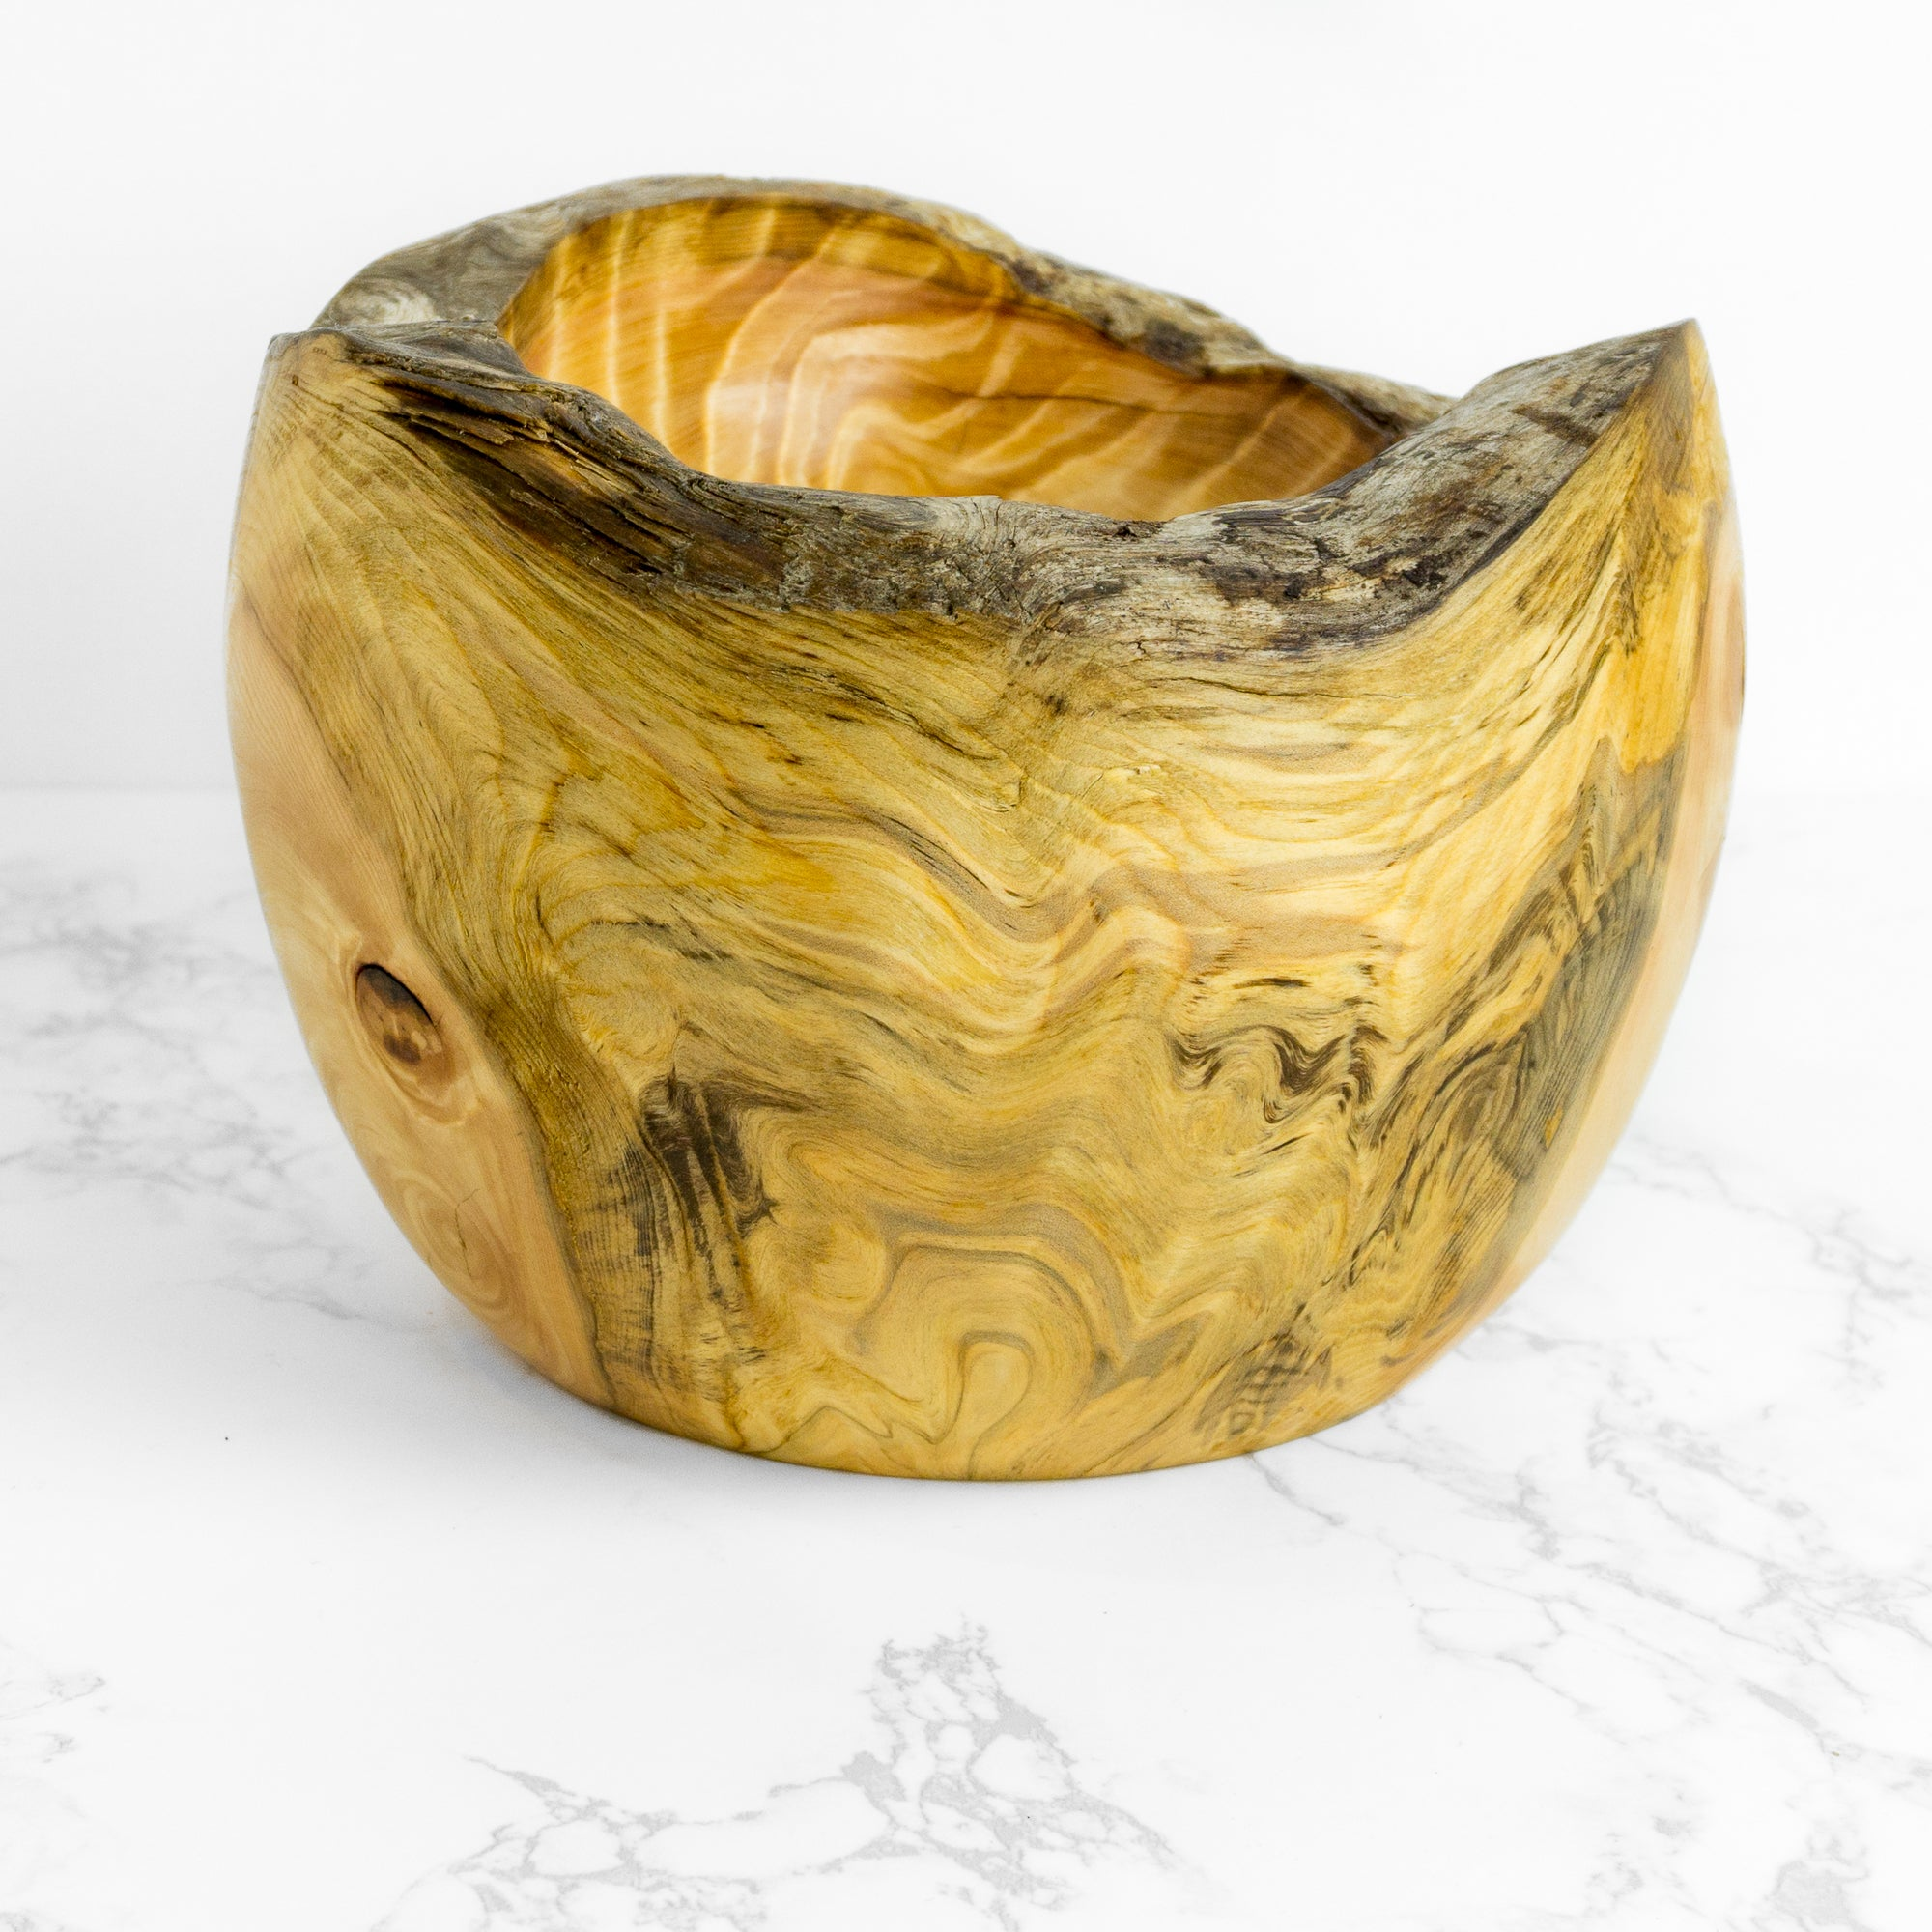 Sitka Spruce Discovery Bowl